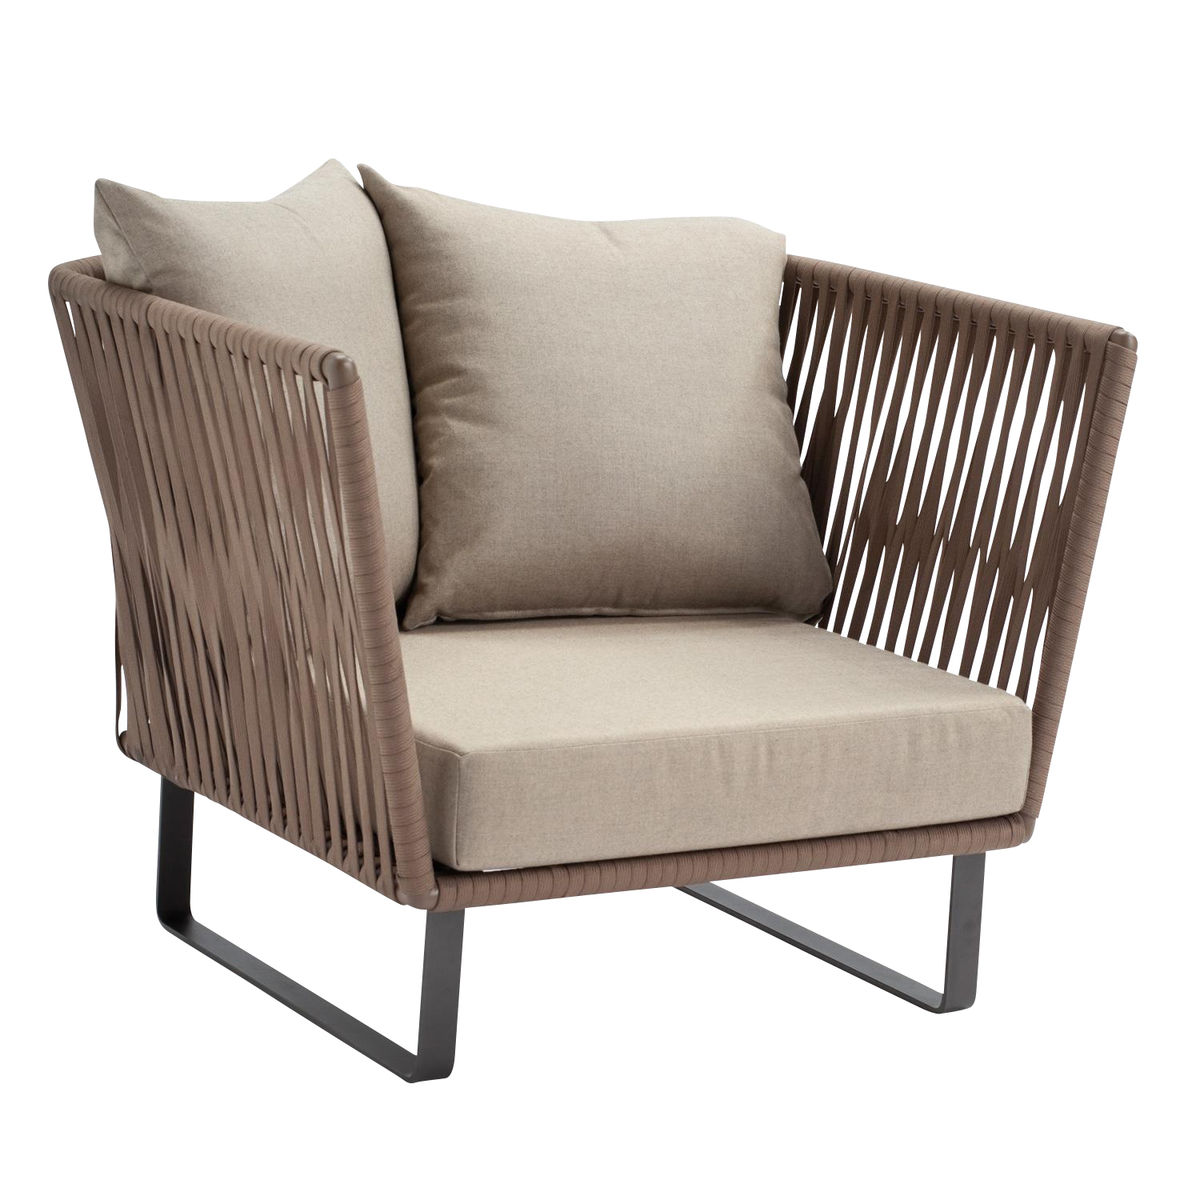 Bitta Club Armchair Garden Chair Kettal Ambientedirect Com